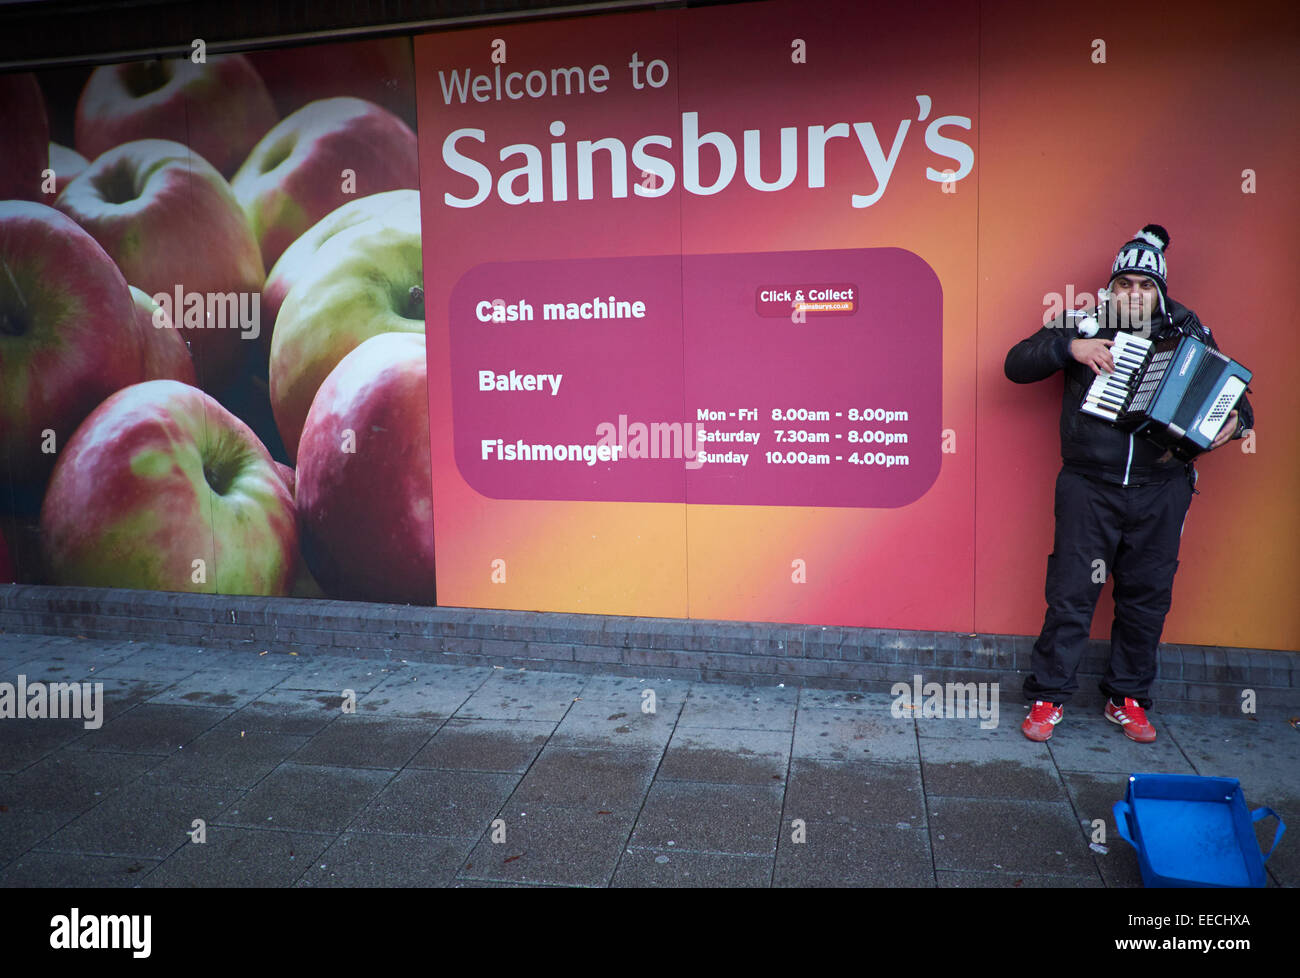 Stockport town centre Sainsbury's store, a busker performs with his Accordion - Stock Image